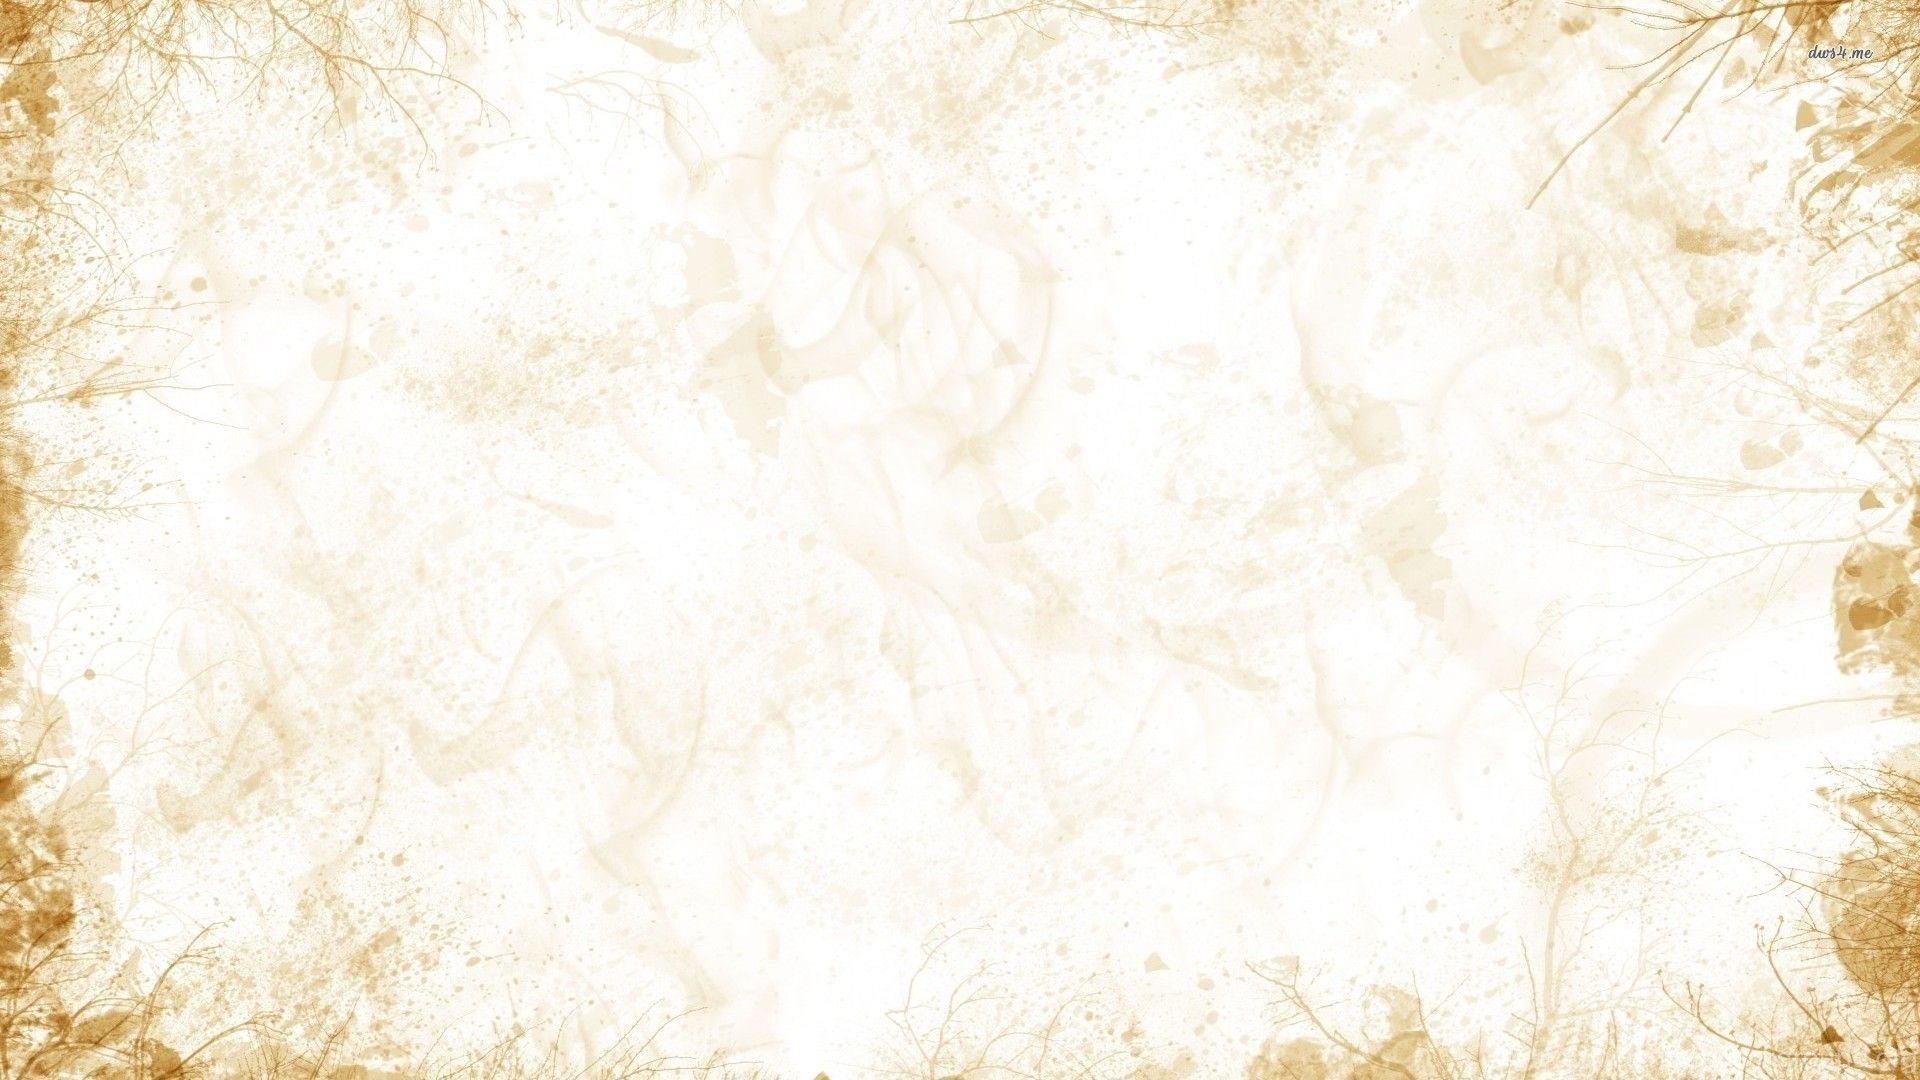 Swirly Framed Paper Texture Wallpapers Abstract Wallpapers Desktop ...